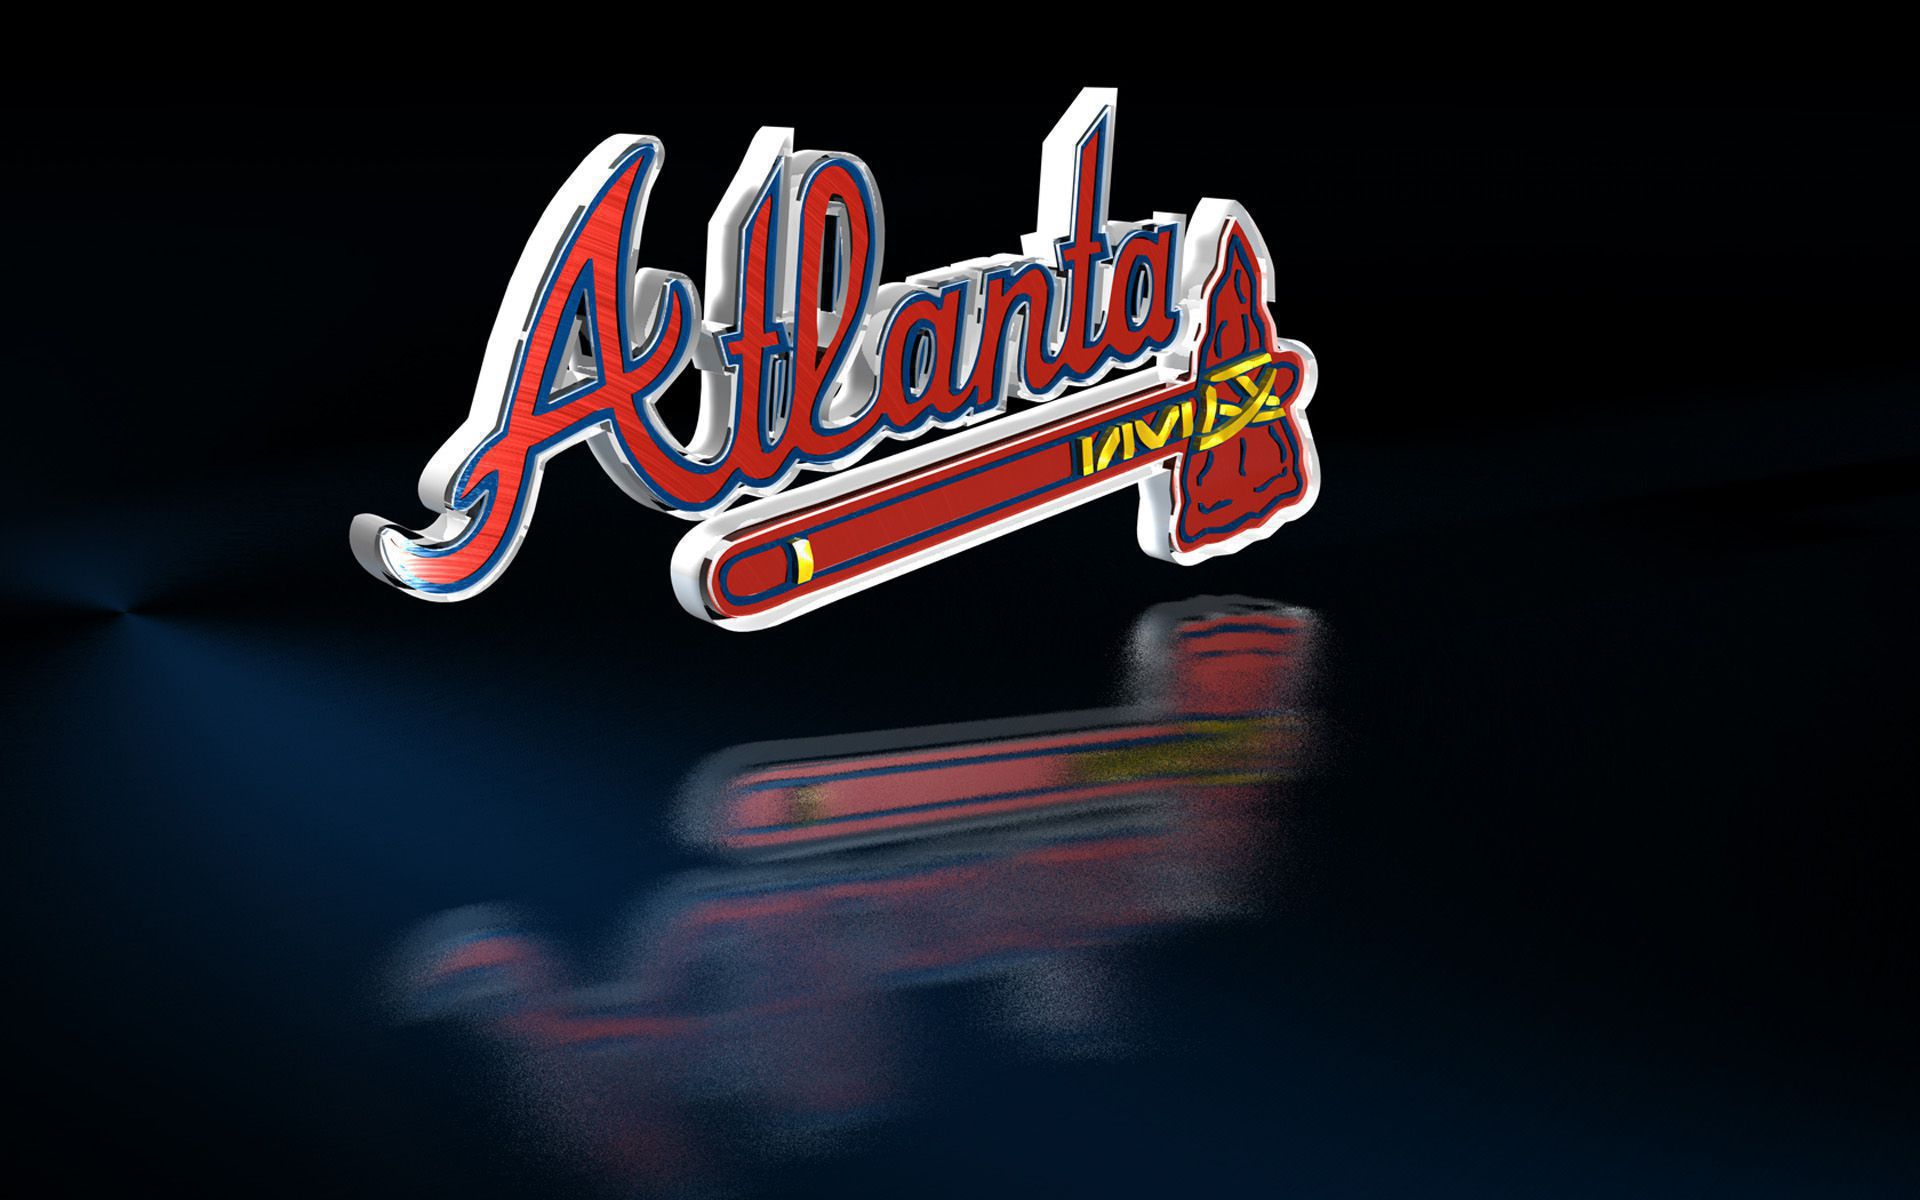 Atlanta Braves Tumblr